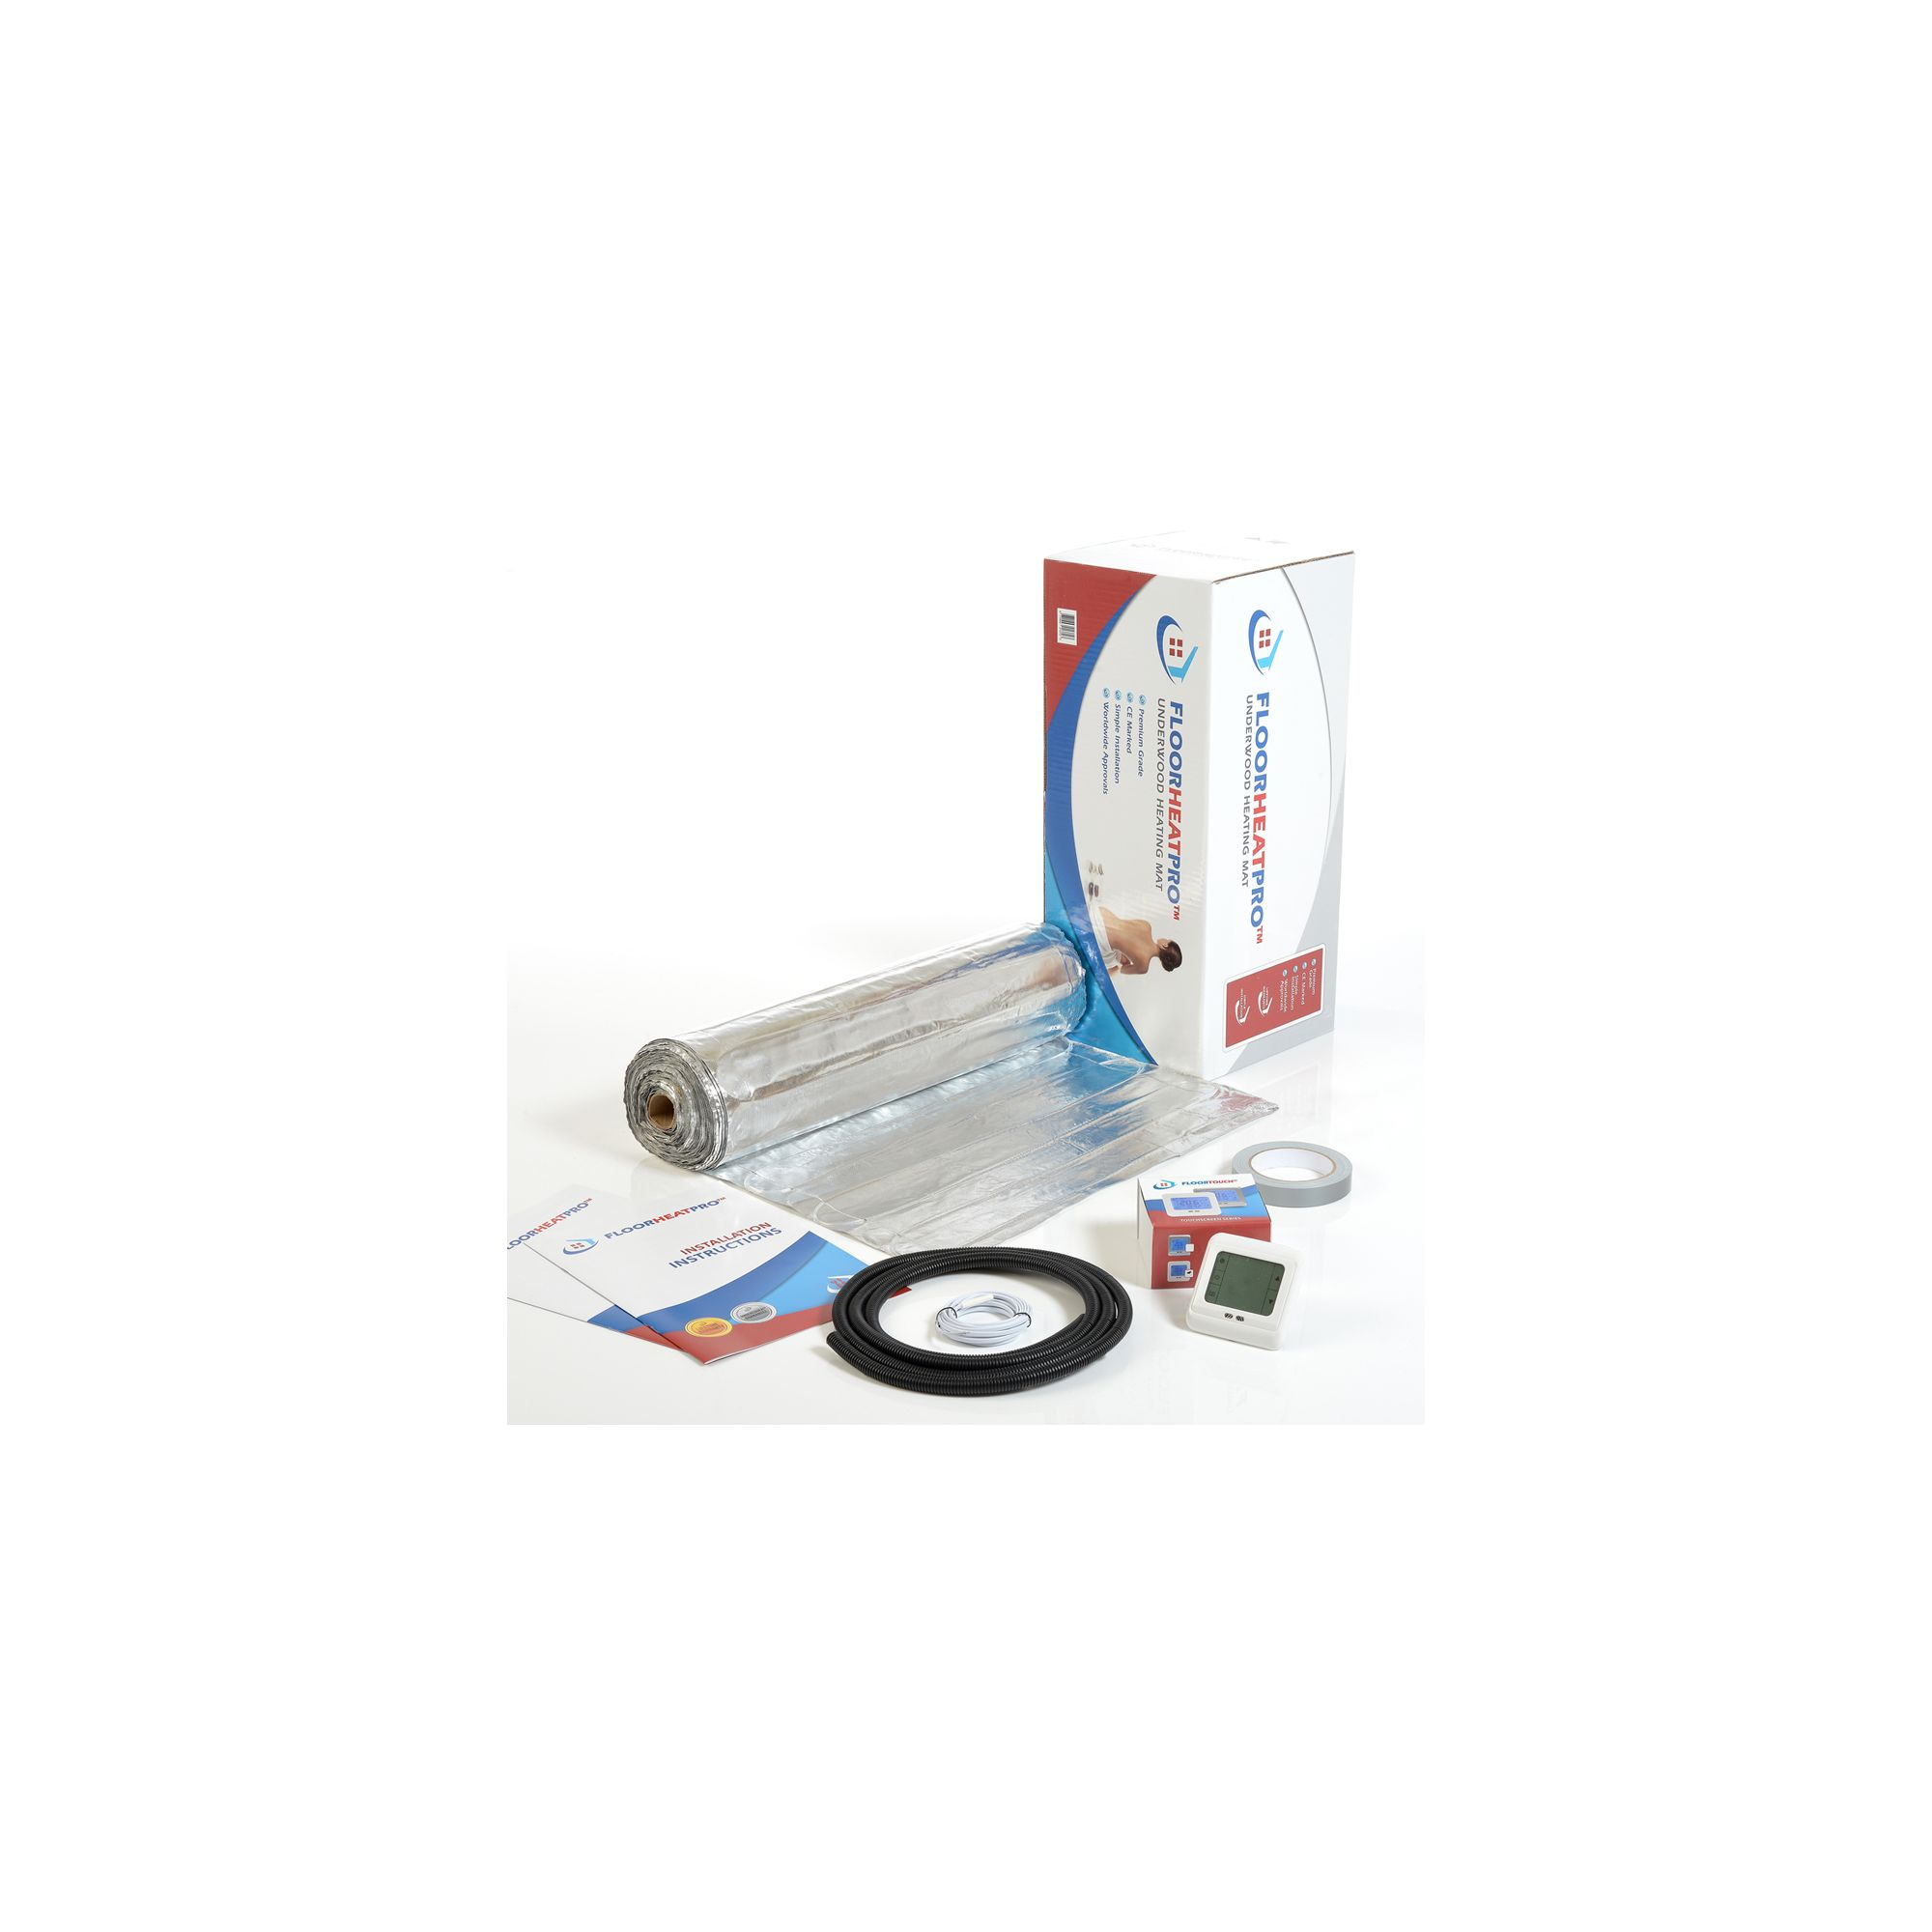 16.0m2 - Underfloor Electric Heating Kit 150w/m2 - Tiles at Tesco Direct